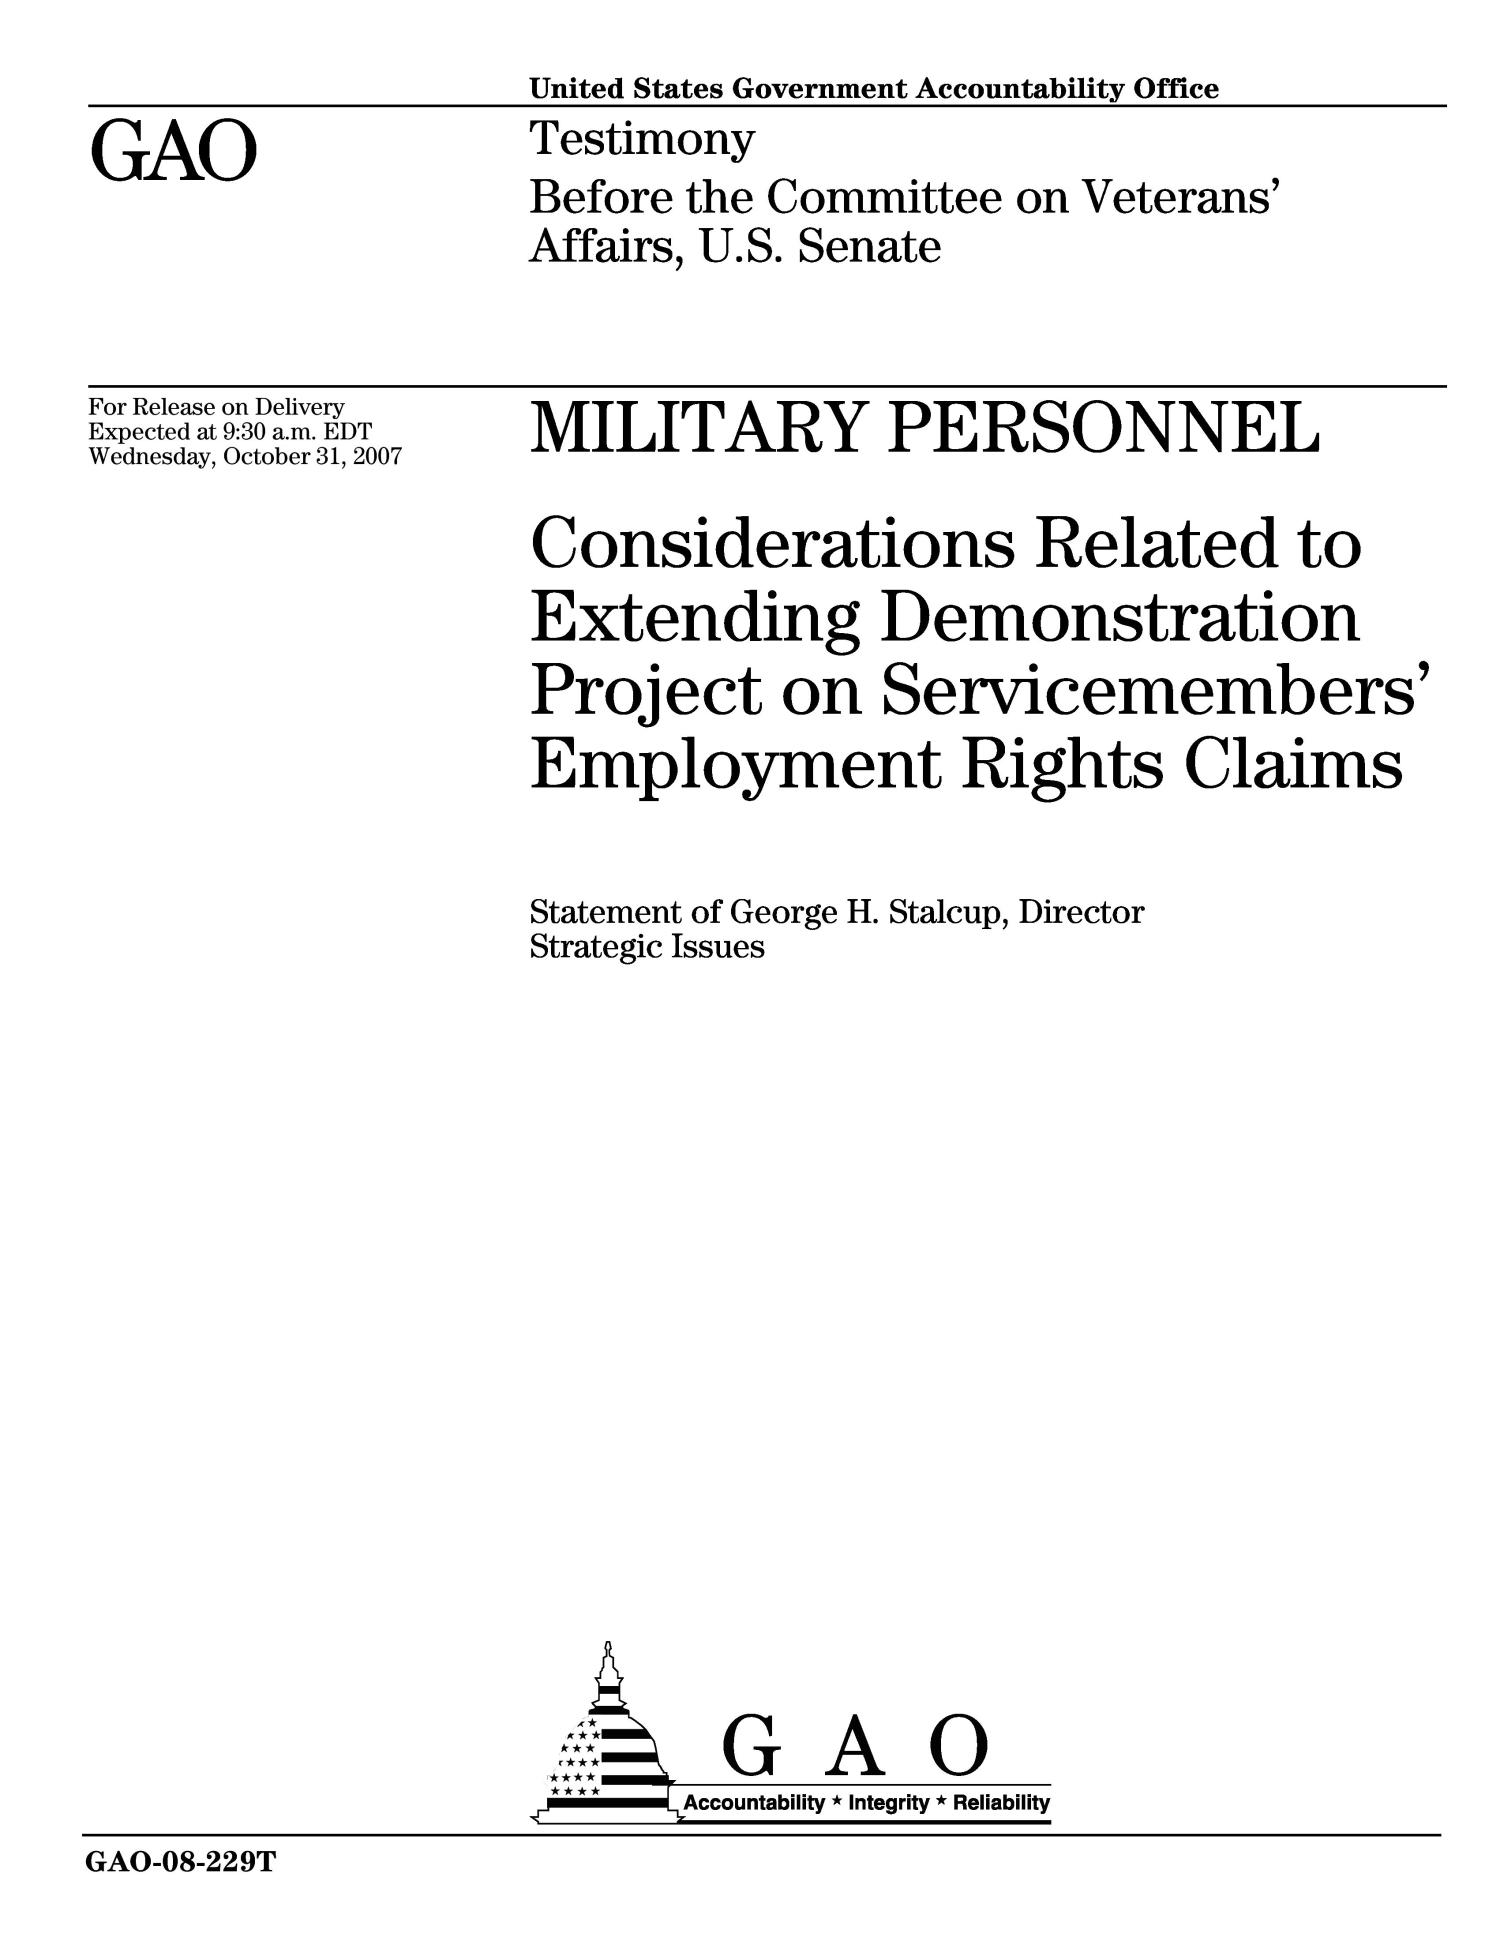 Military Personnel: Considerations Related to Extending Demonstration Project on Servicemembers' Employment Rights Claims                                                                                                      [Sequence #]: 1 of 15